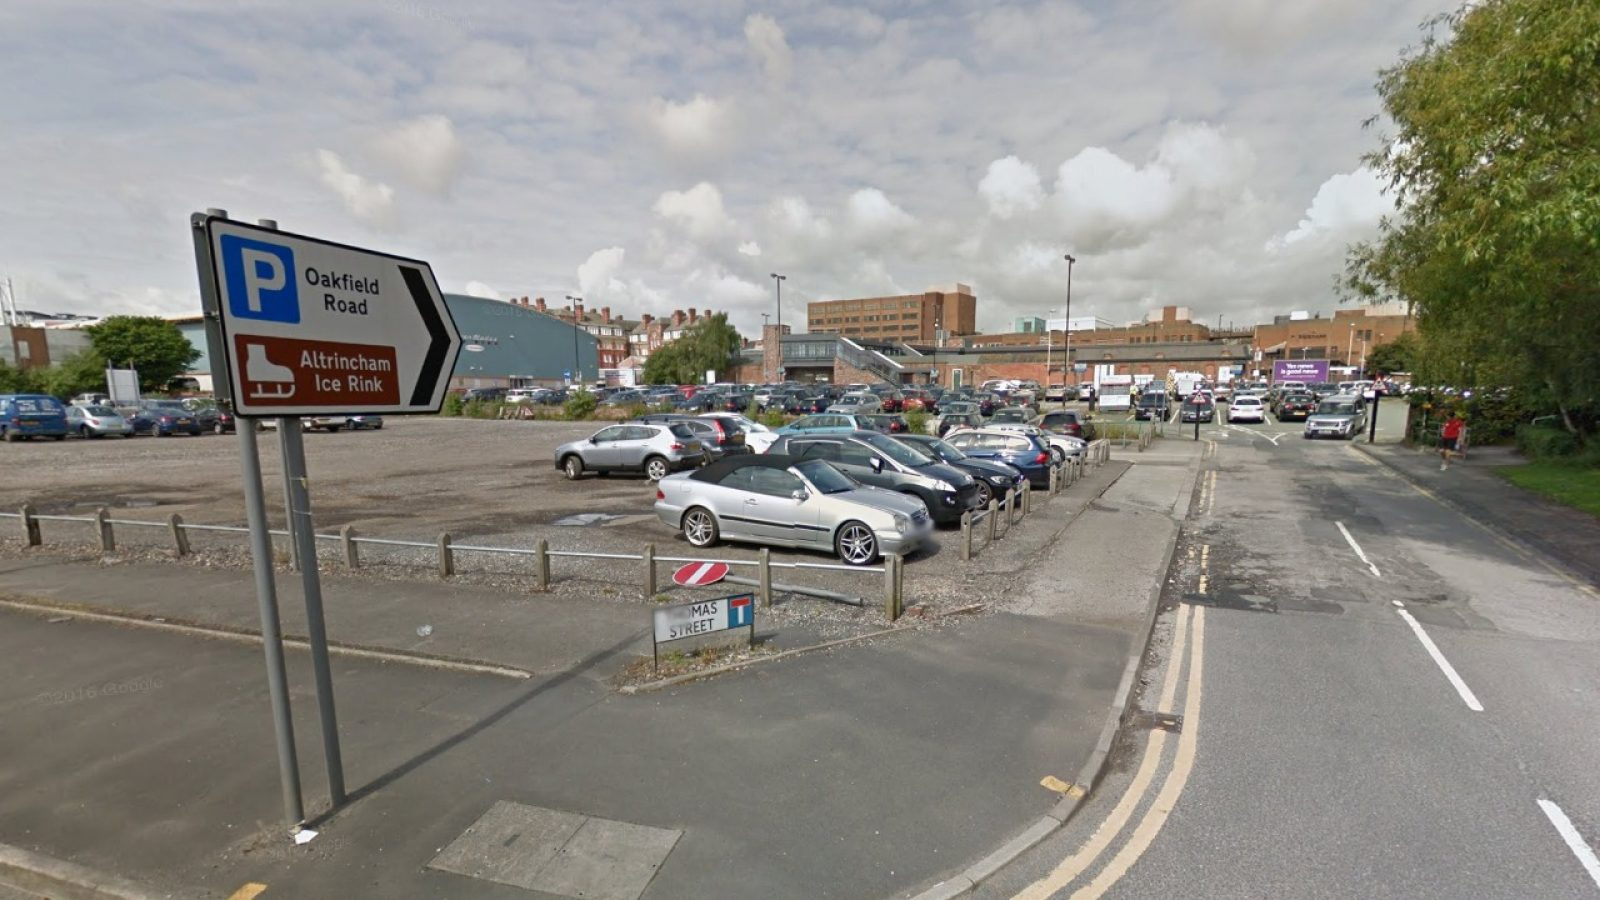 The proposed Altrincham Leisure Centre plan would include 300 car parking spaces.